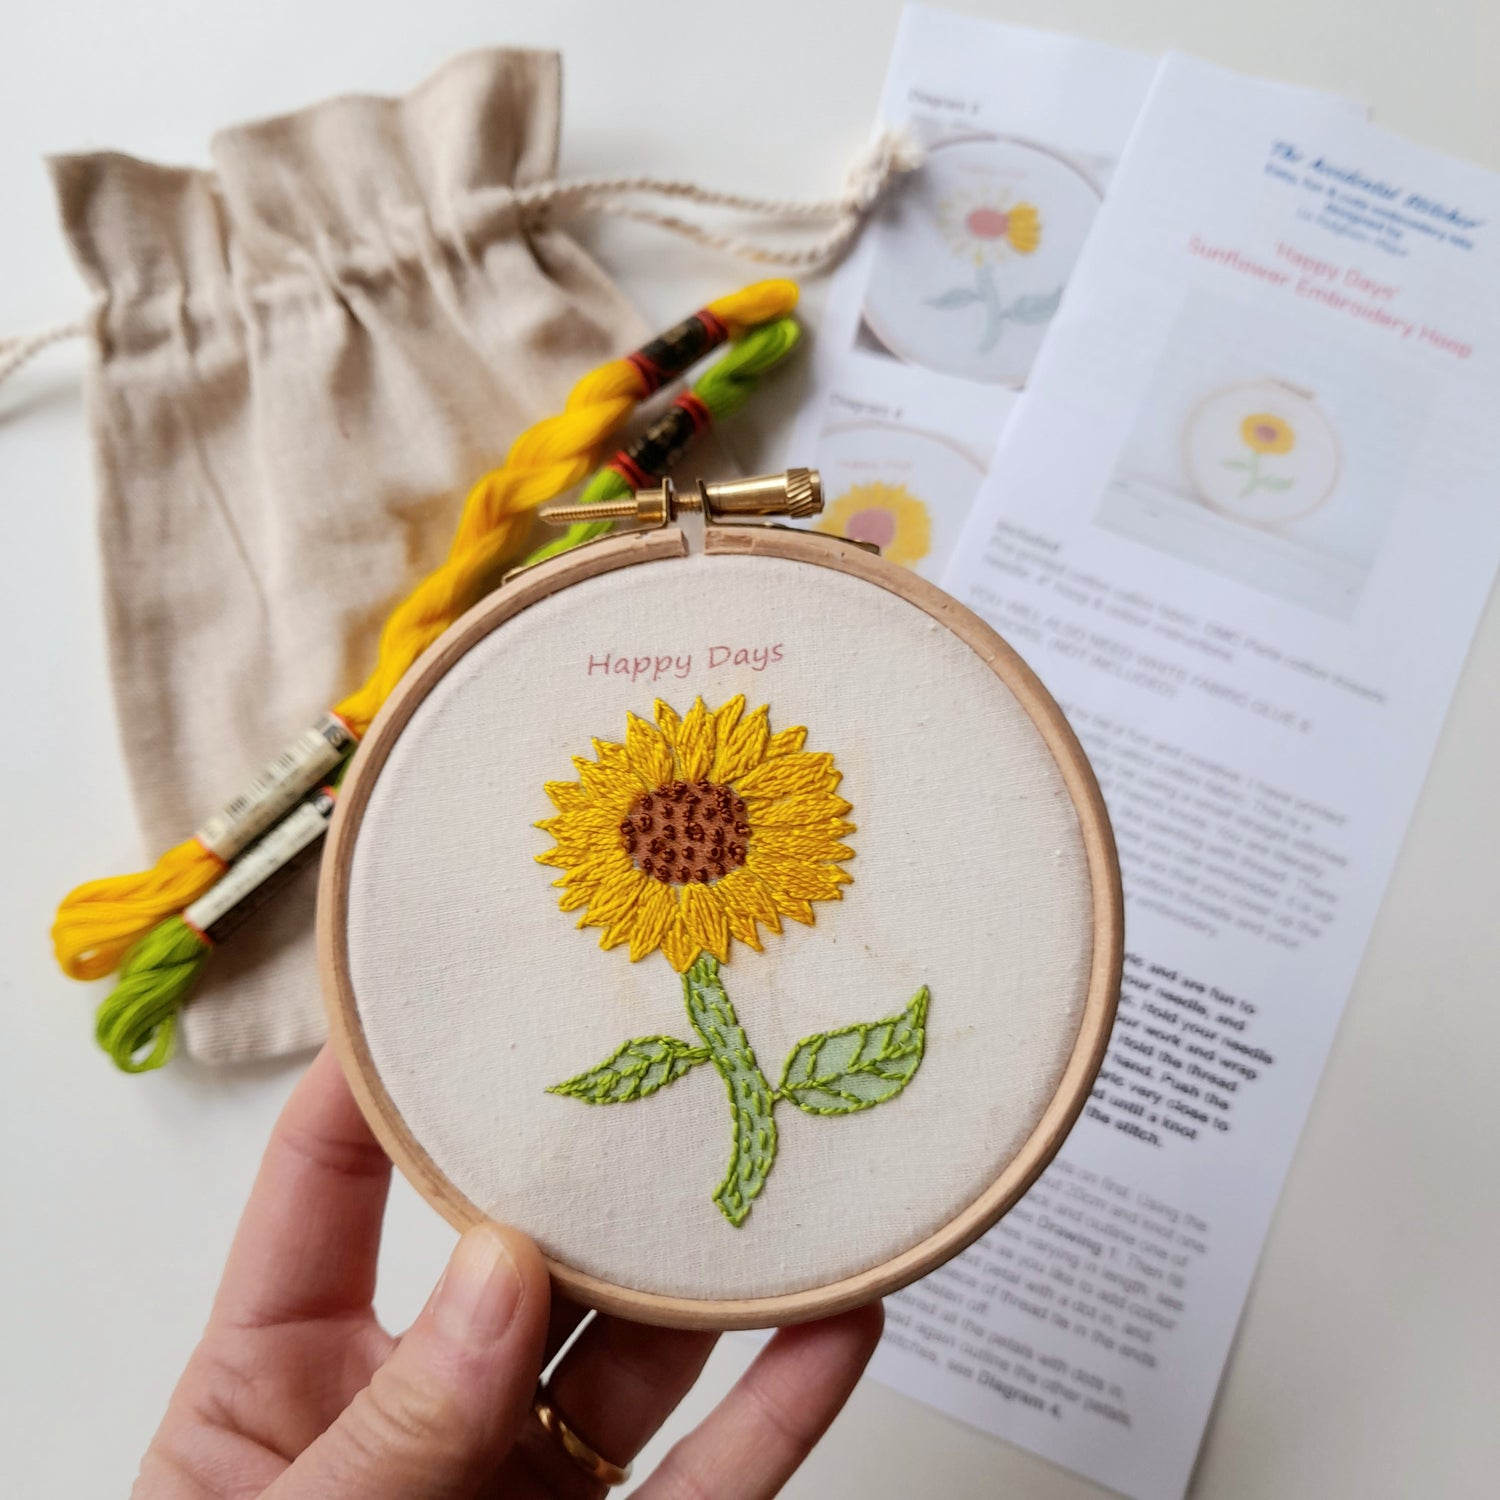 Image of Sunflower Hand Embroidery Kit